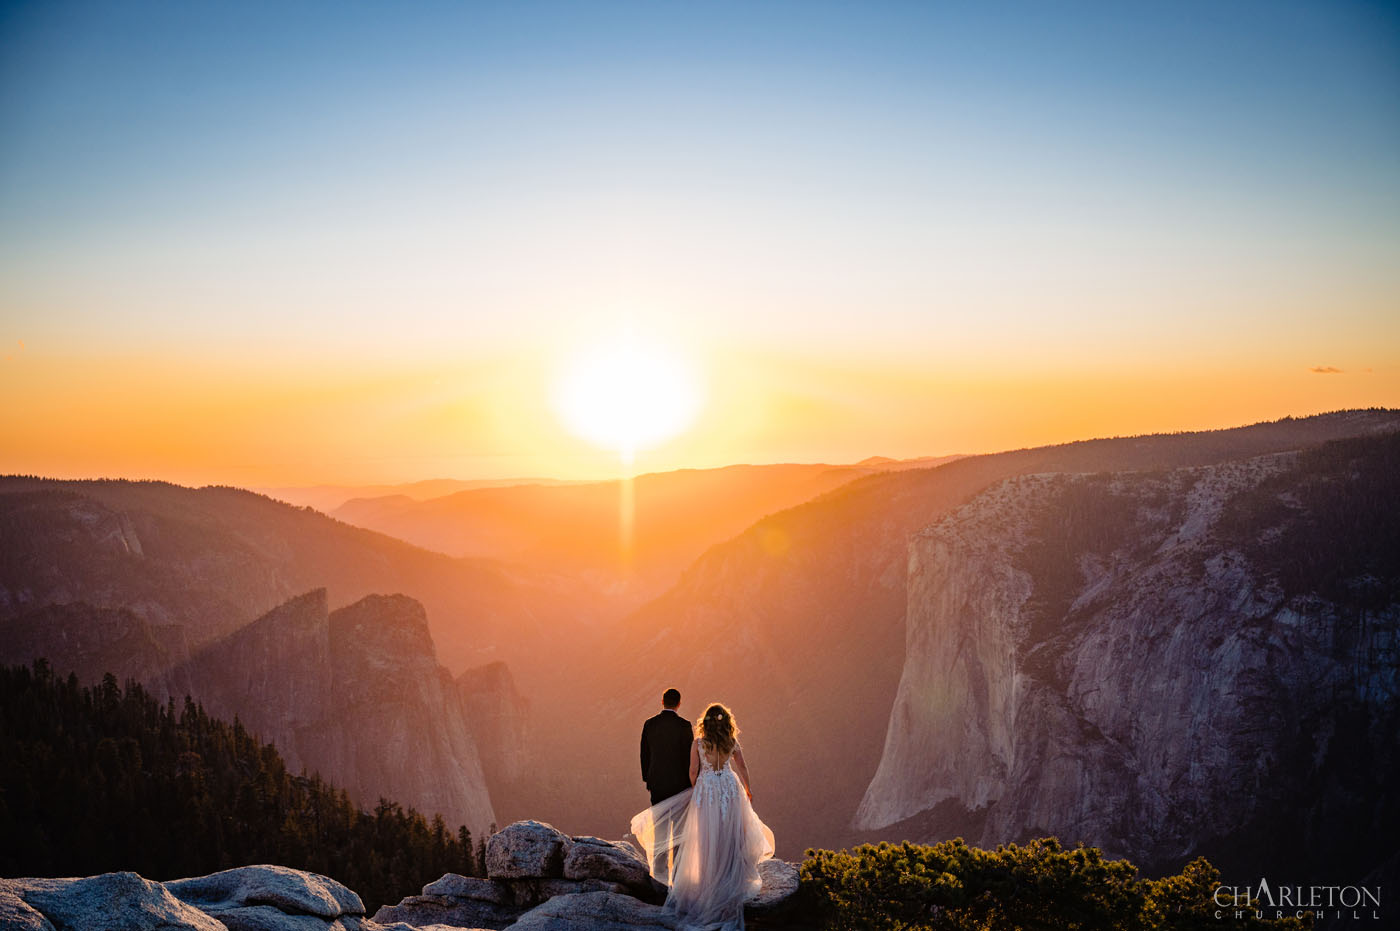 yosemite elopement ceremony at sentinel dome with adventure wedding photographer